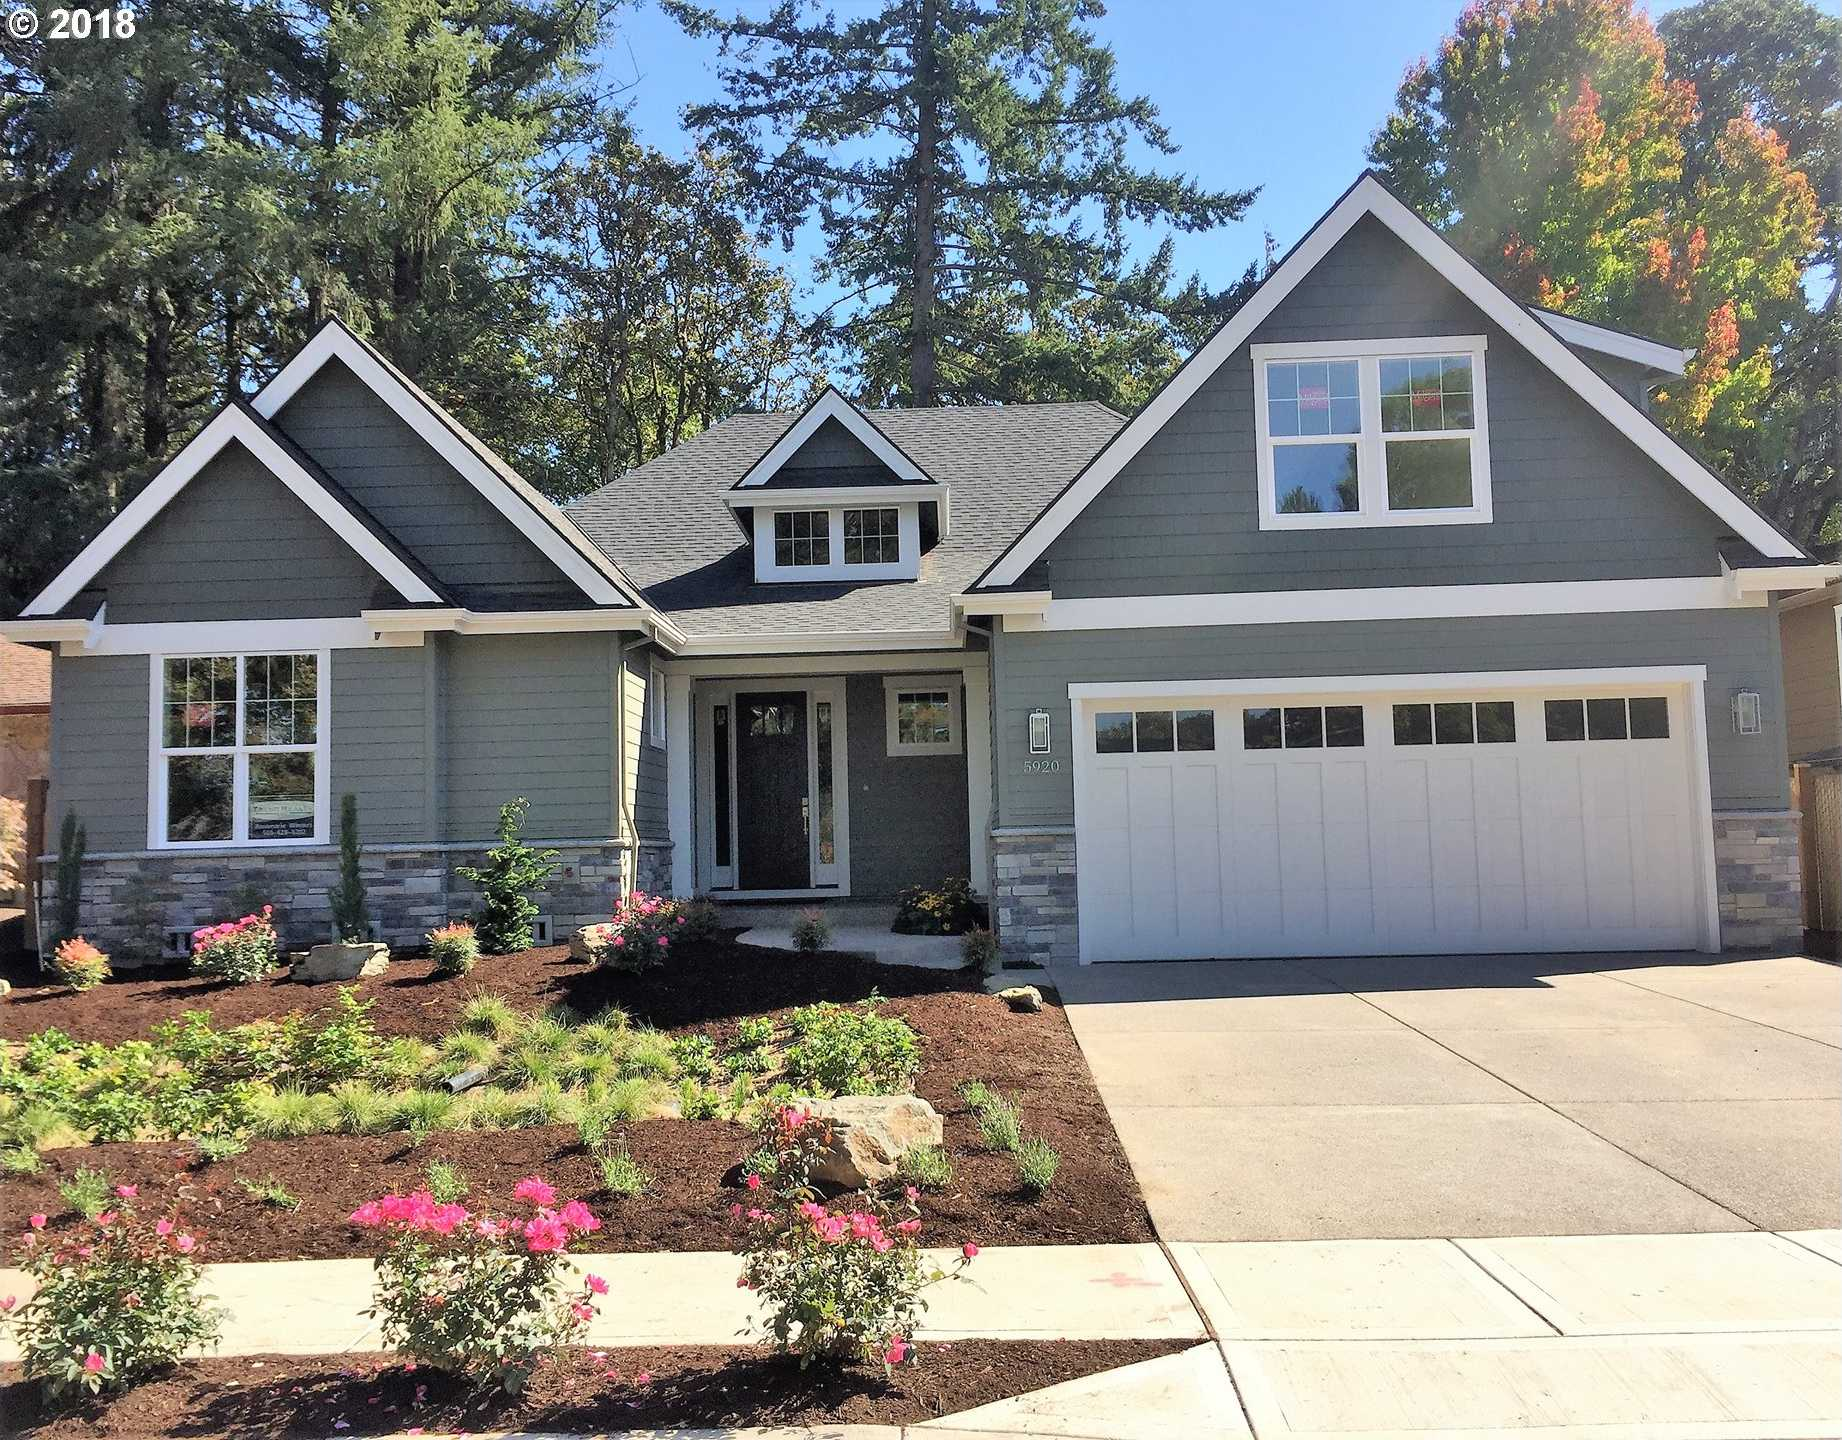 $958,700 - 4Br/3Ba -  for Sale in Beaverton